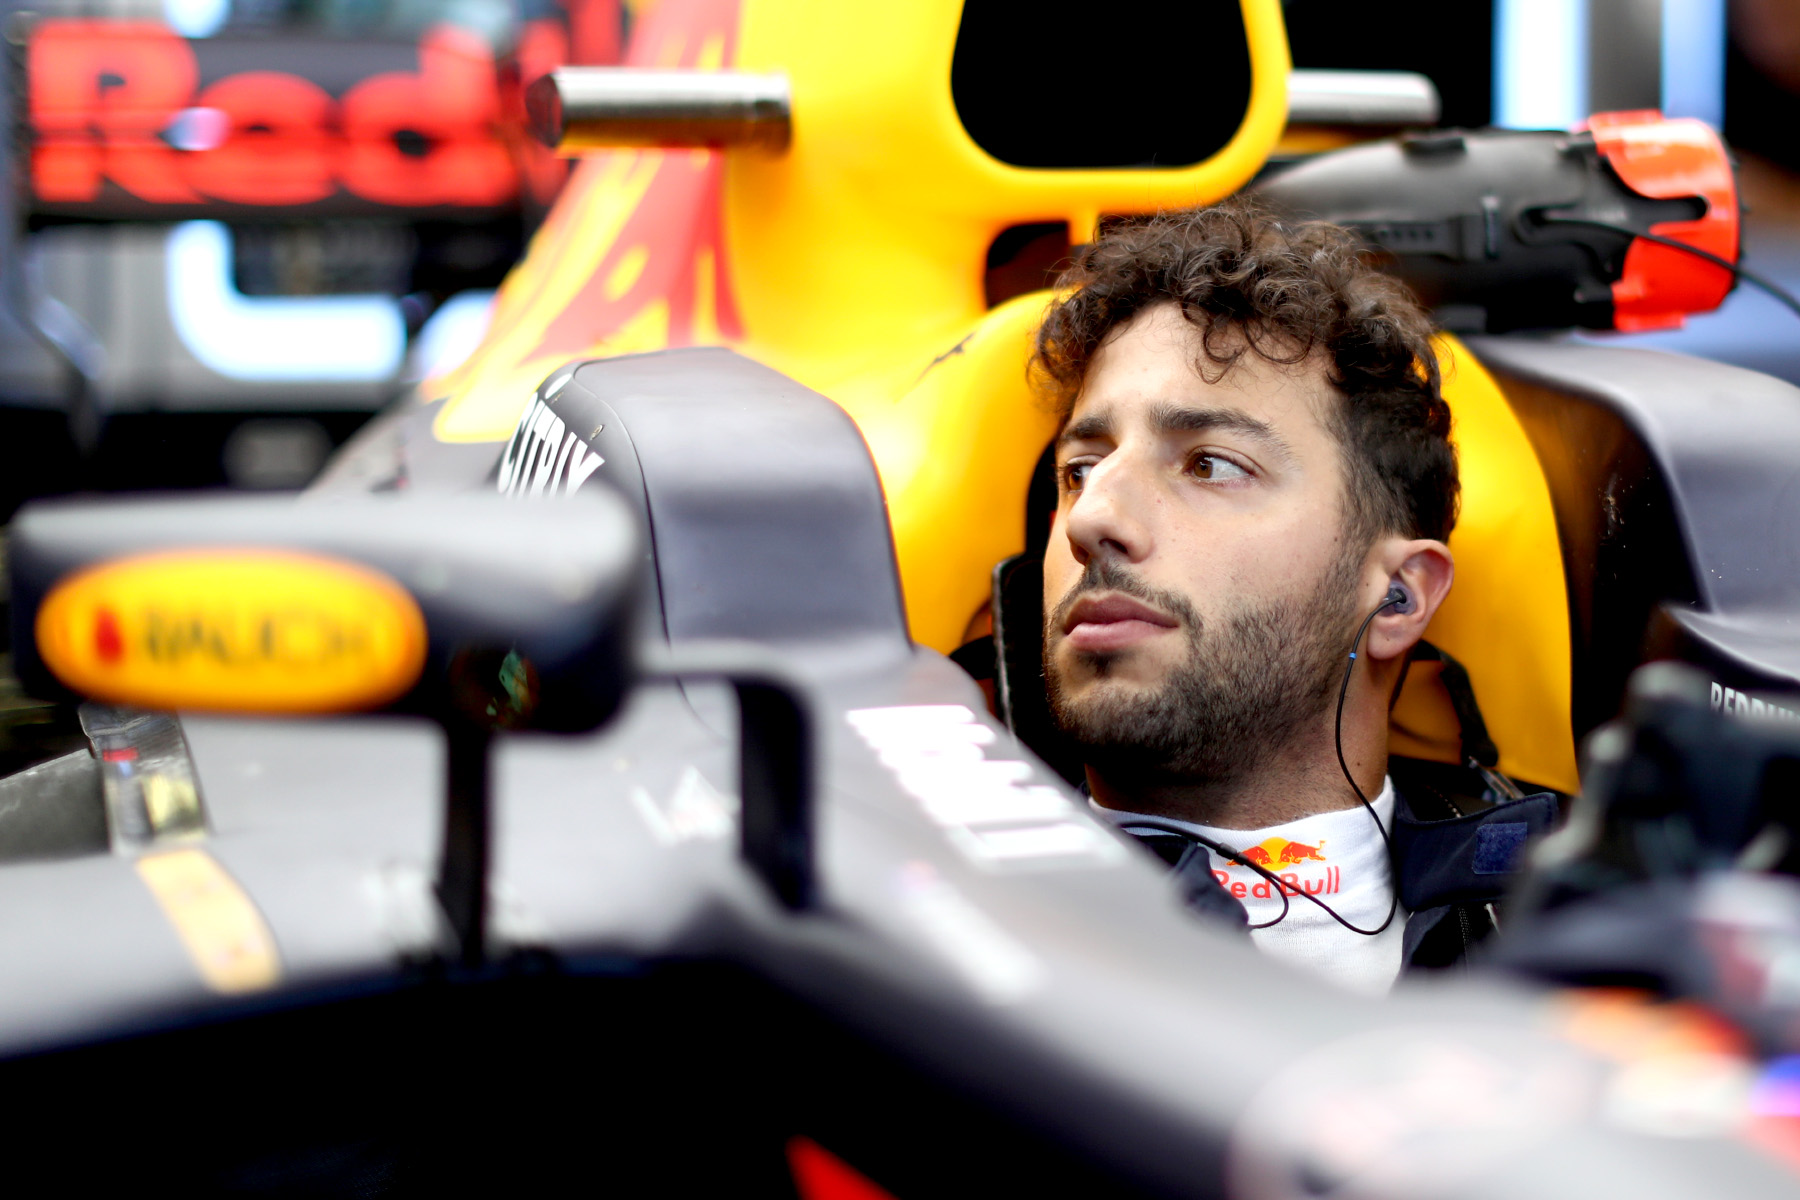 Daniel Ricciardo sits in his RB13 at the 2017 Hungarian Grand Prix.